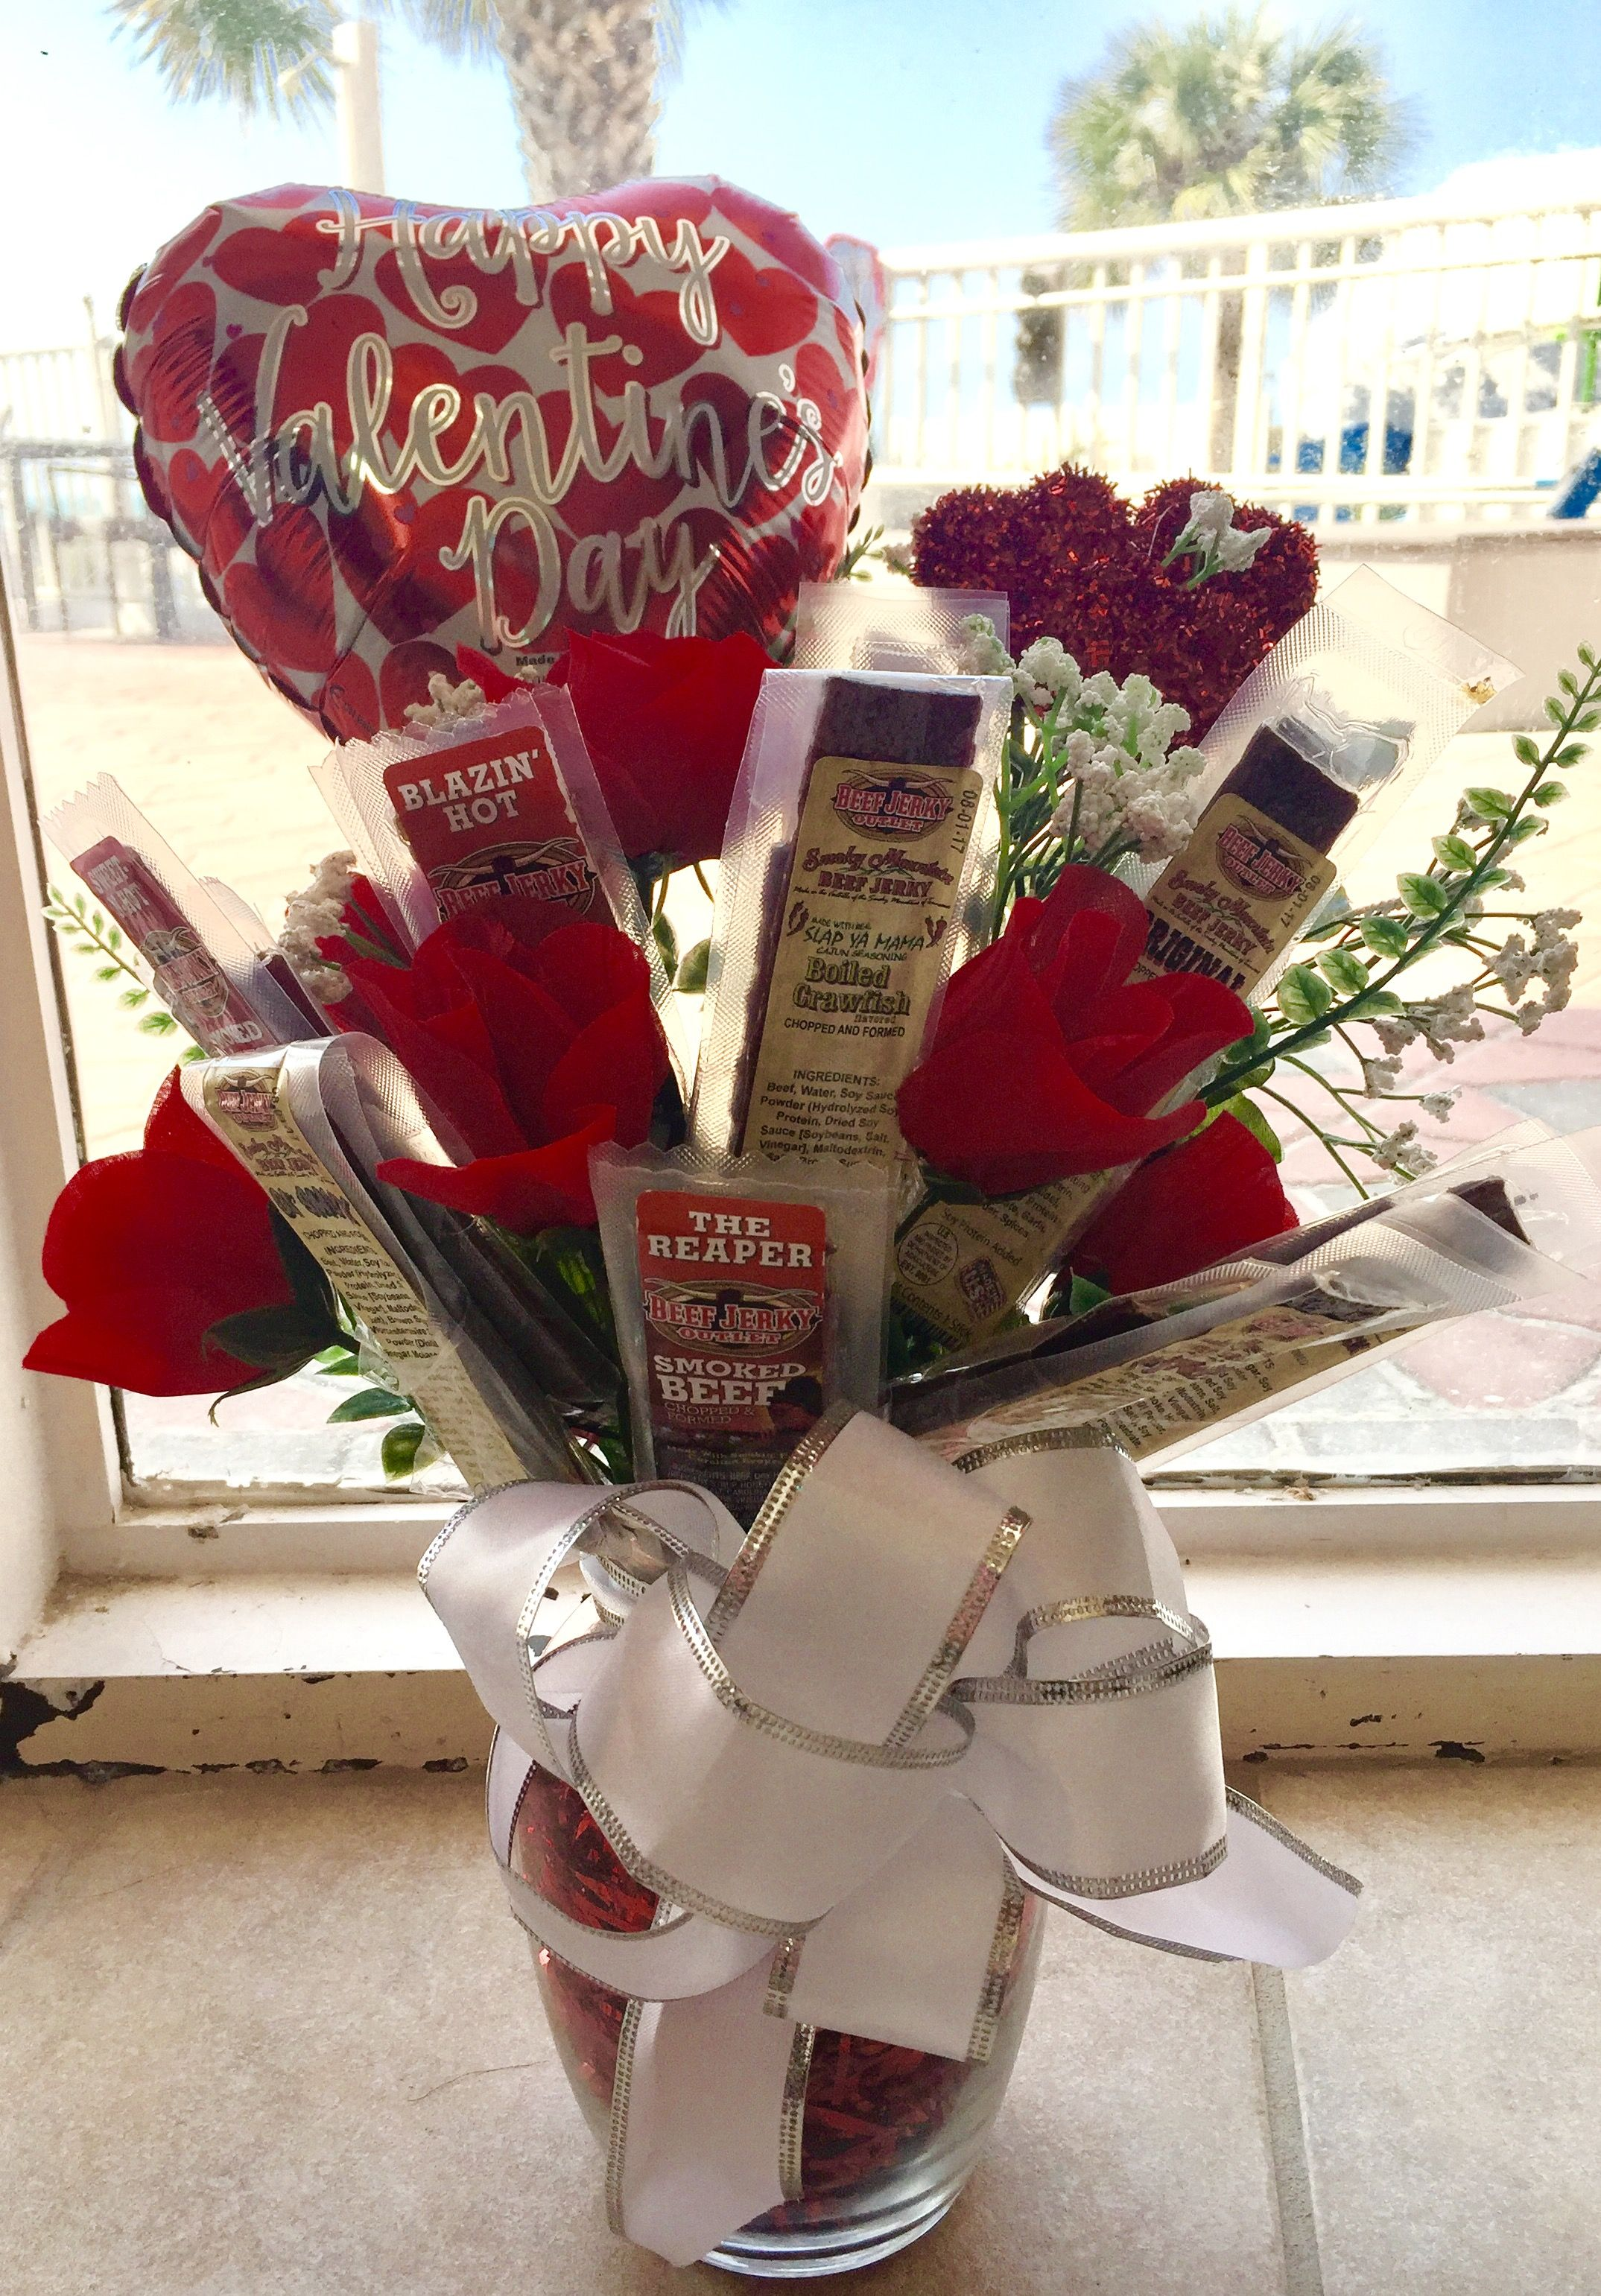 Beef Jerky Bouquet Diy : jerky, bouquet, Jerky, Bouquet, Perfect, Life., Includes, Individually, Wrappe…, Valentines, Gifts, Creative,, Gift,